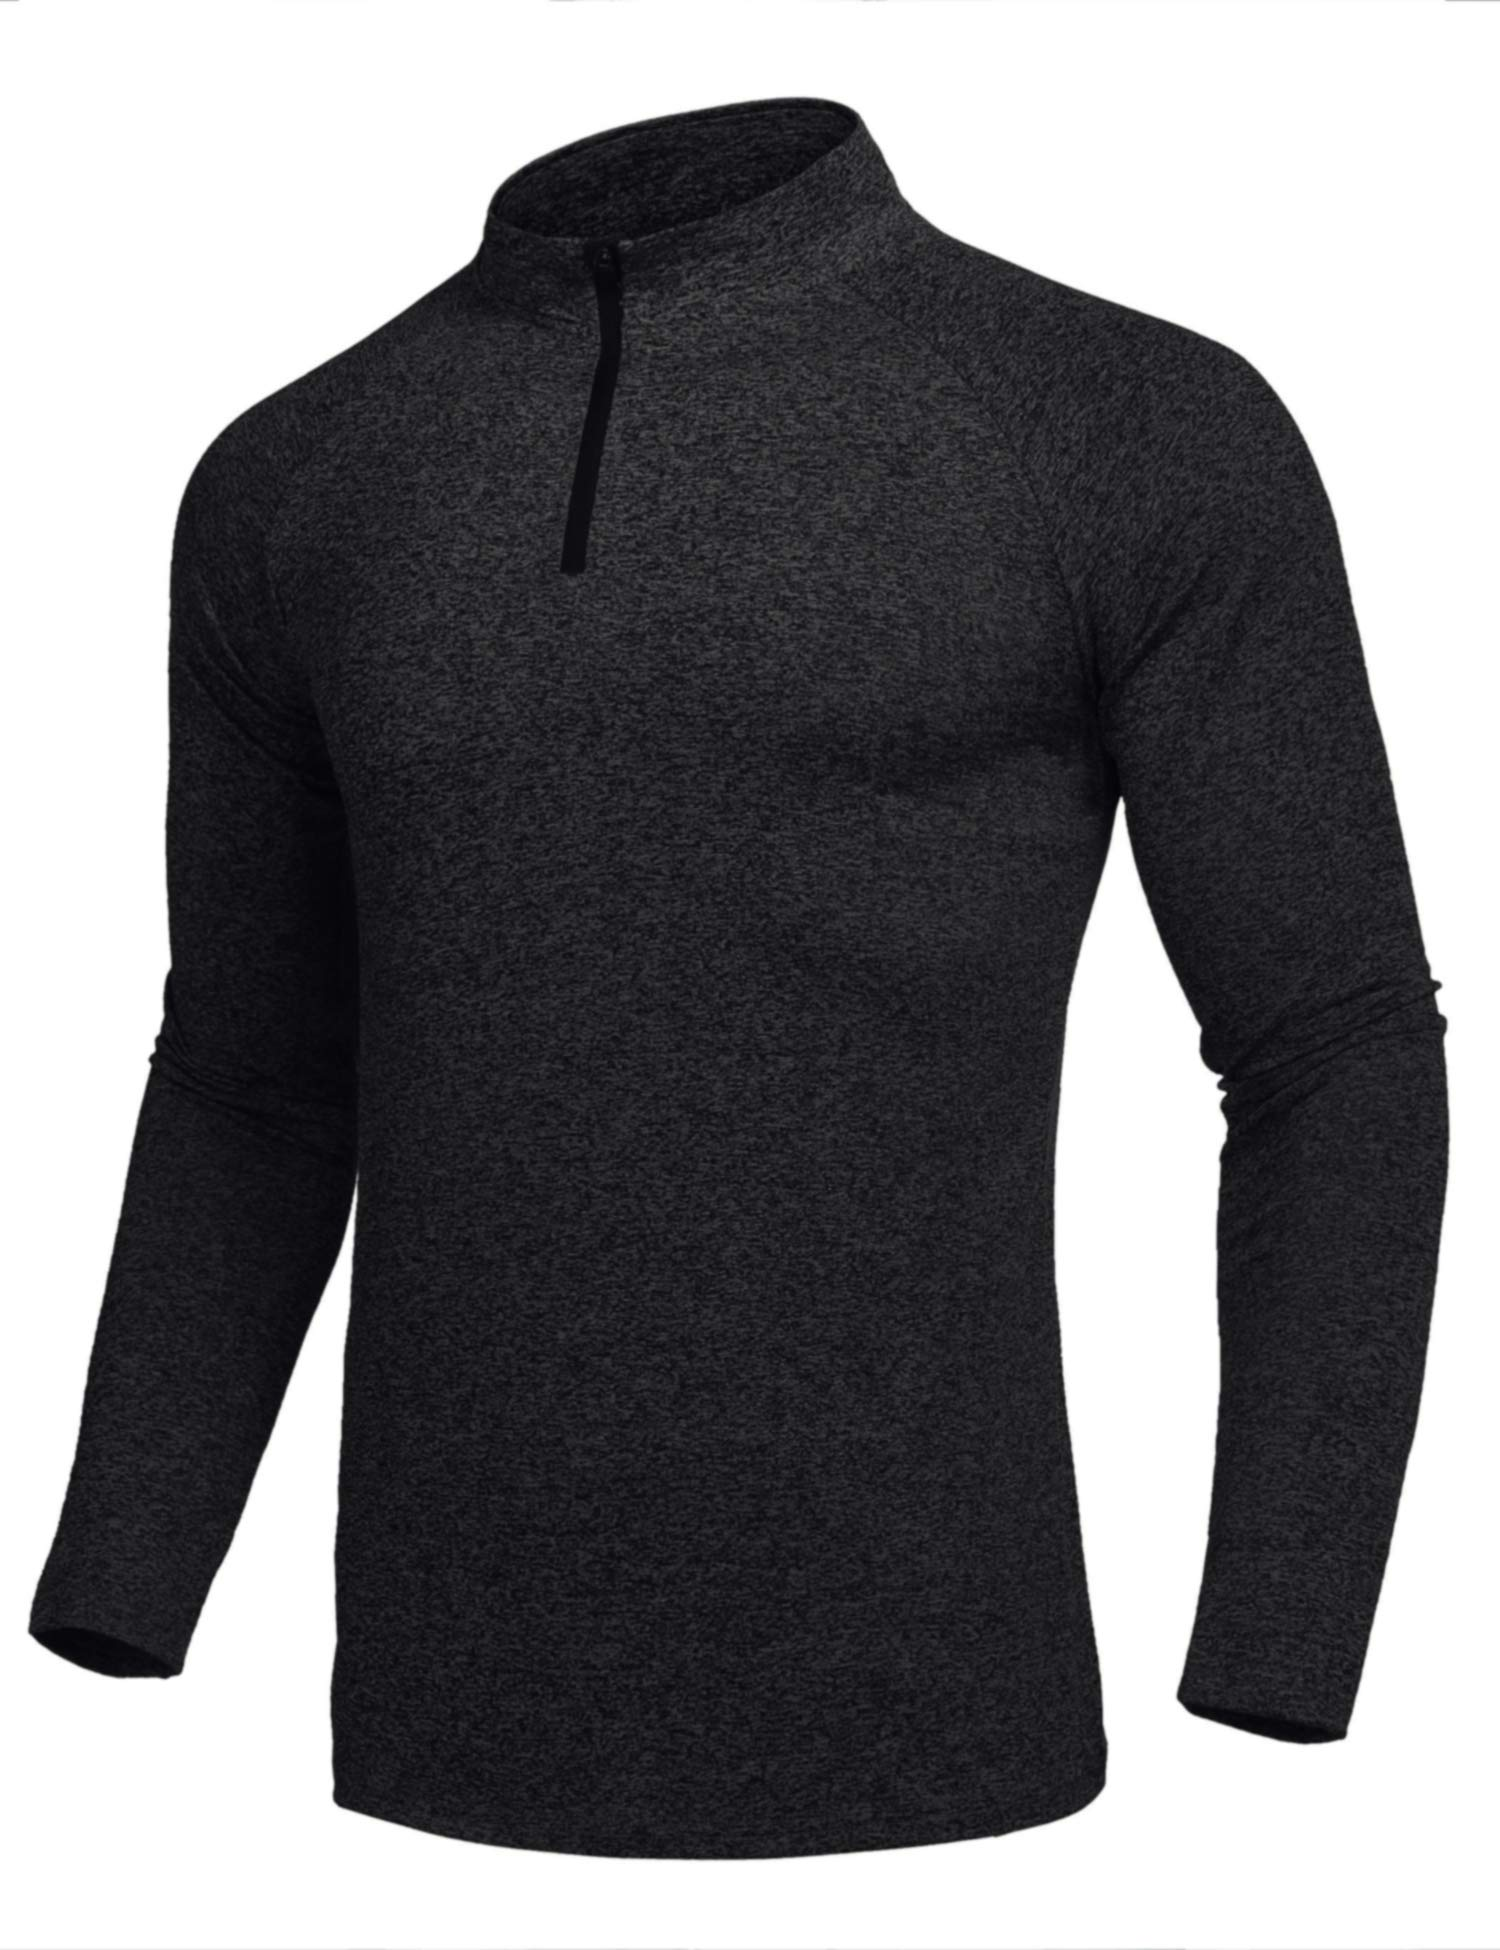 JINIDU Men's Long Sleeve Active 1/4 Zip T Shirt Cool Dry Training Gym Pullover by JINIDU